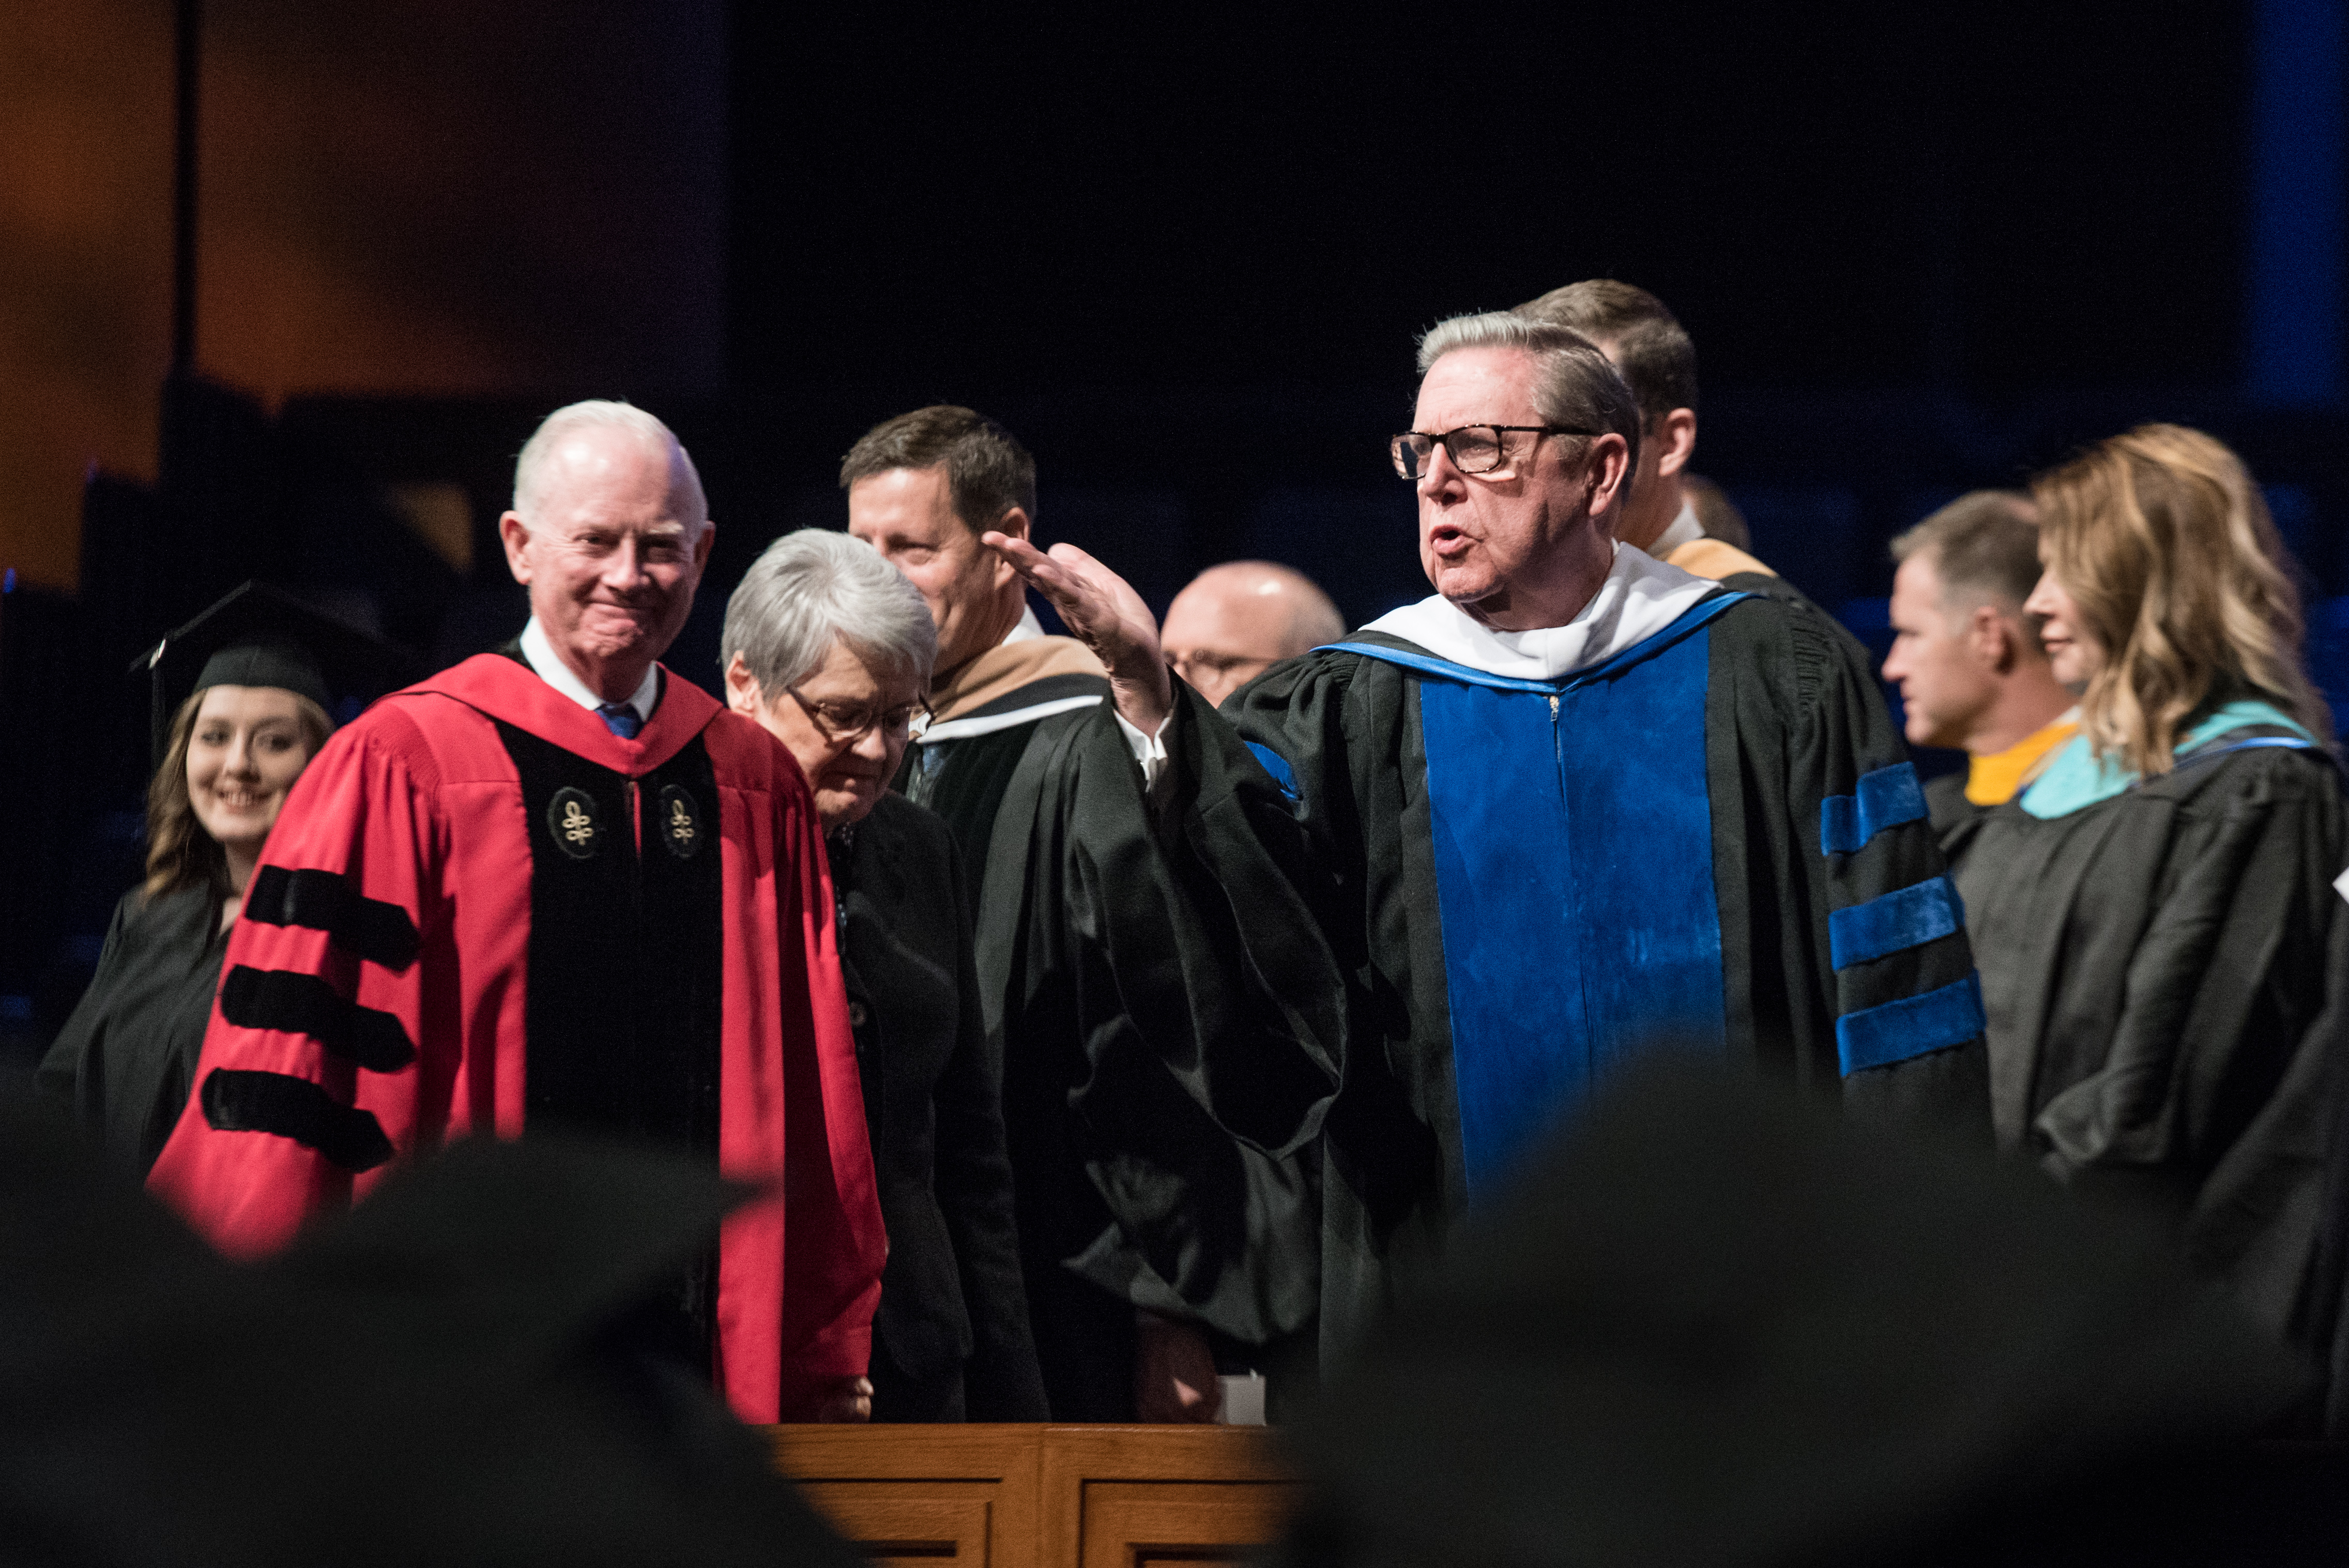 Elder Jeffrey R. Holland bids farewell to the graduates following the April 12, 2019, Winter Commencement at BYU-Idaho.